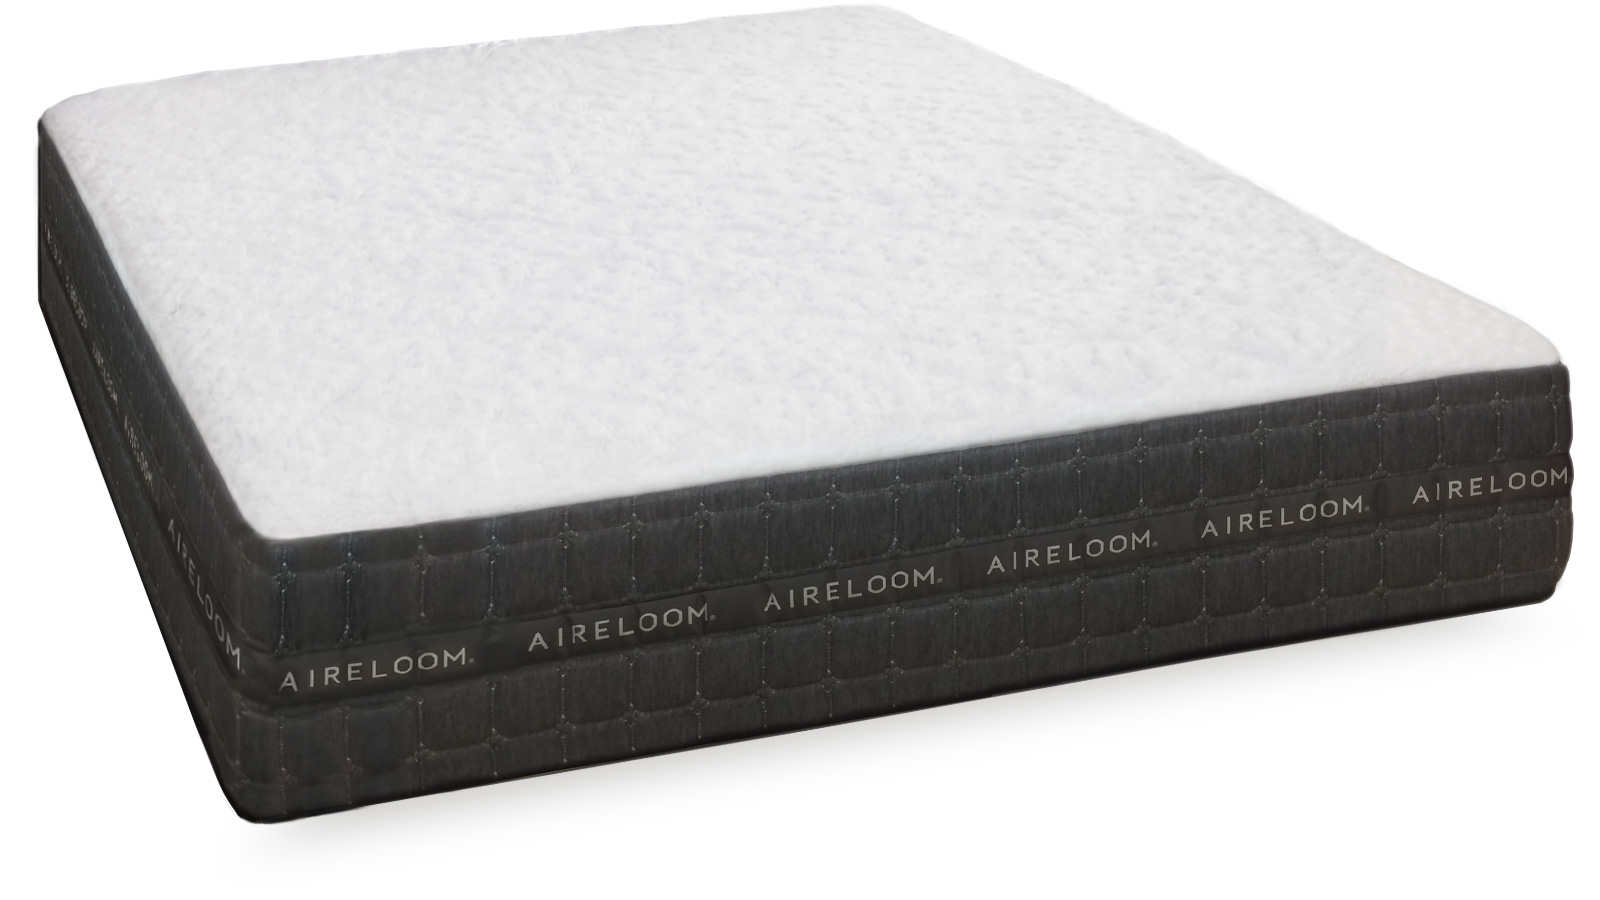 Aireloom Clearance Sale Mattress: Aireloom Hybrid Aspire Firm